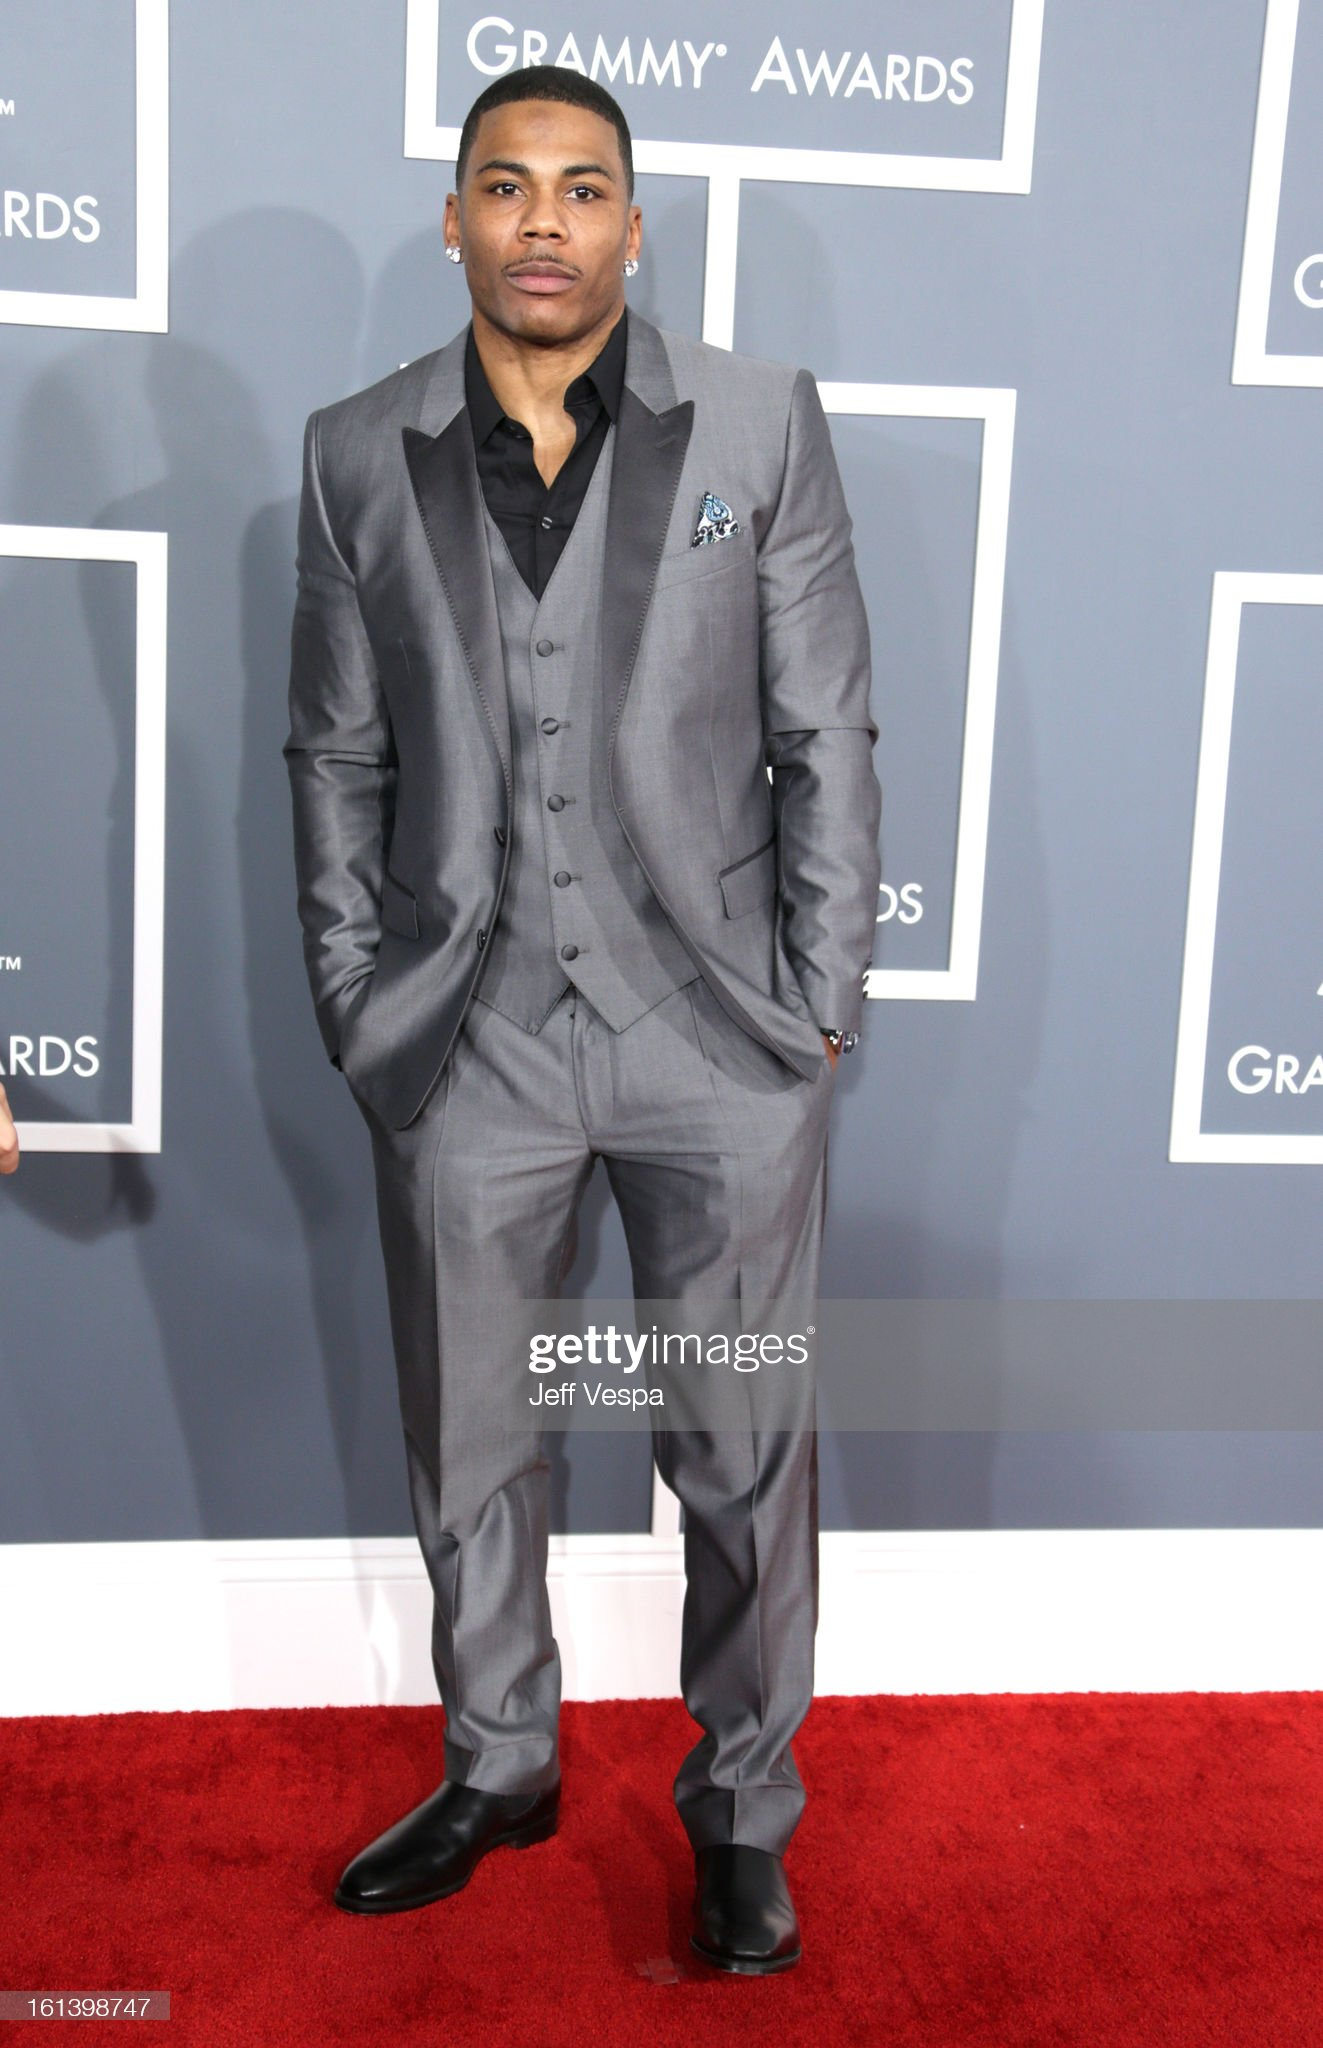 ¿Cuánto mide Nelly? - Altura - Real height Rapper-nelly-attends-the-55th-annual-grammy-awards-at-staples-center-picture-id161398747?s=2048x2048